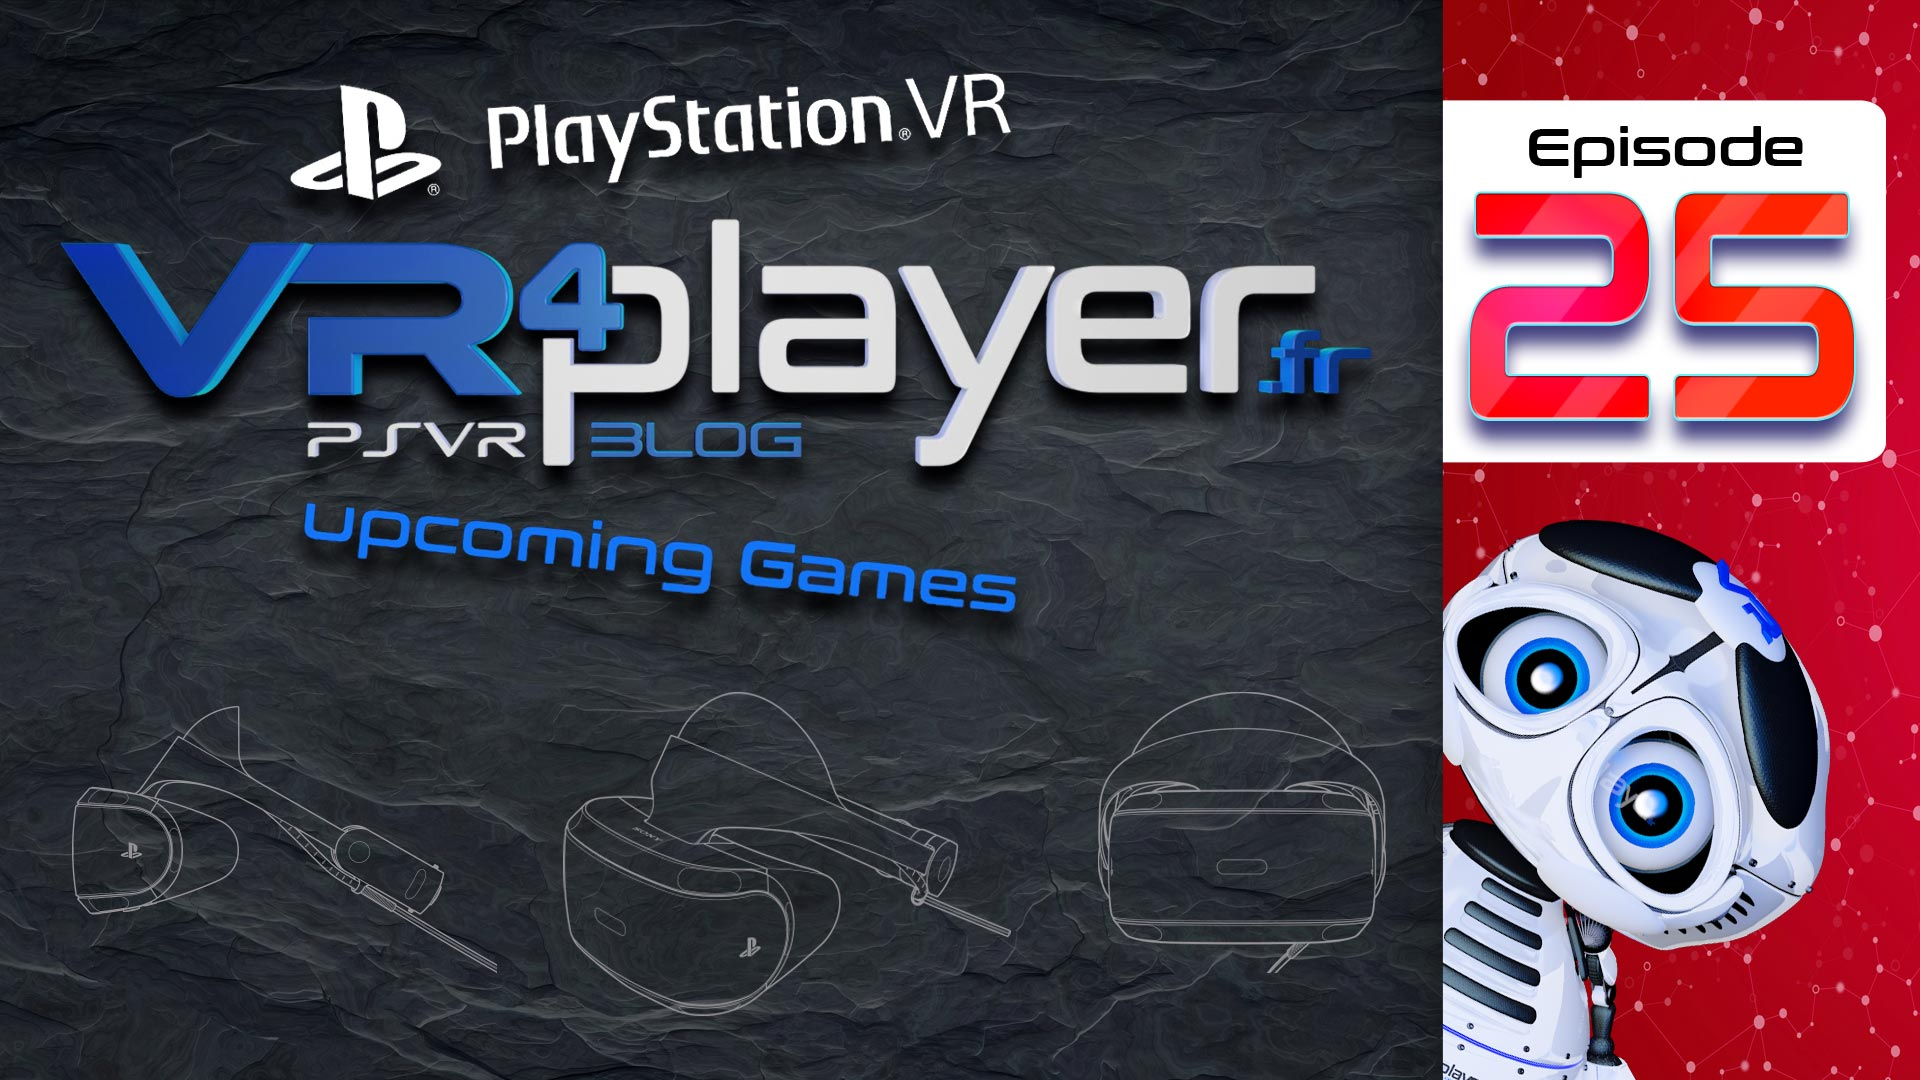 upcoming games - PlayStation VR VR4player